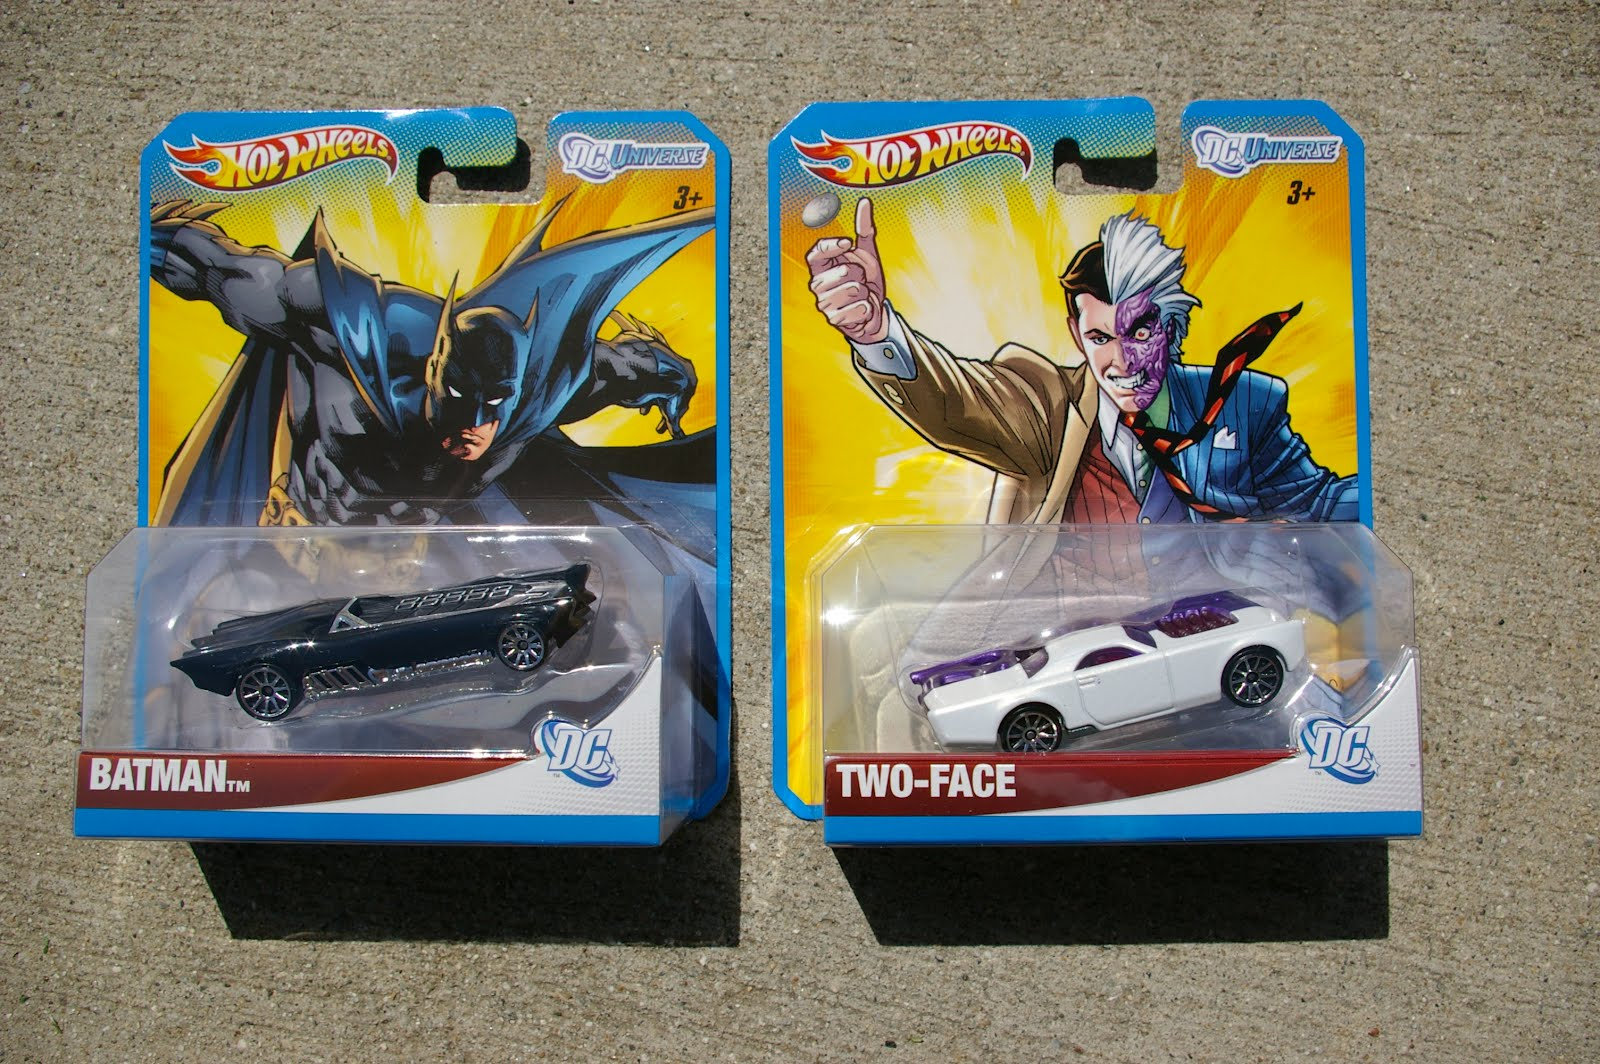 Posted by Vaughan Ling at 11:30 PM 3 comments: